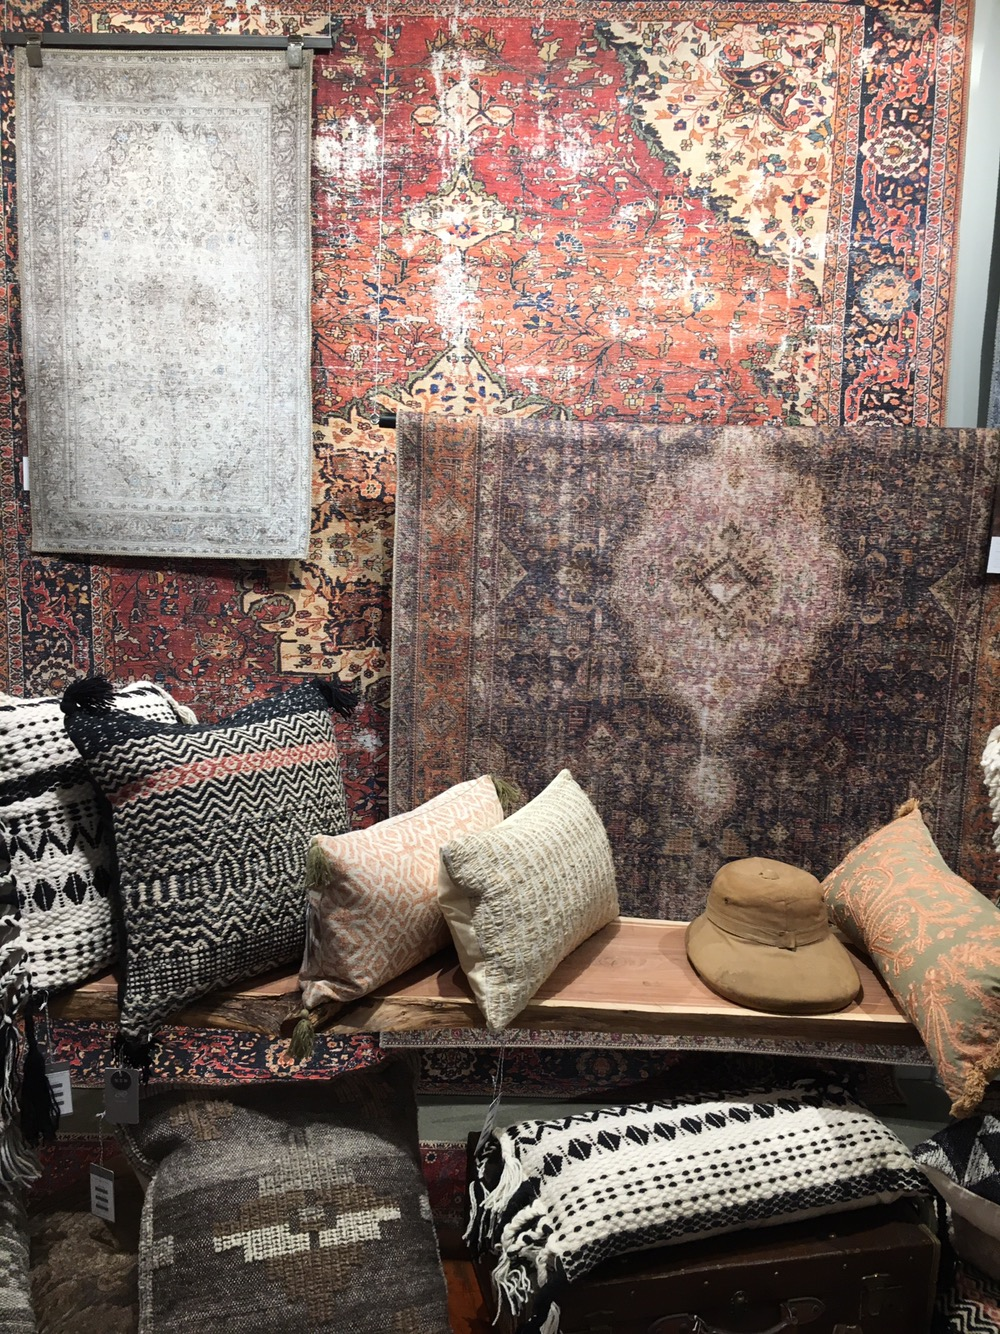 Loloi New Loren Collection At Americasmart Rug News